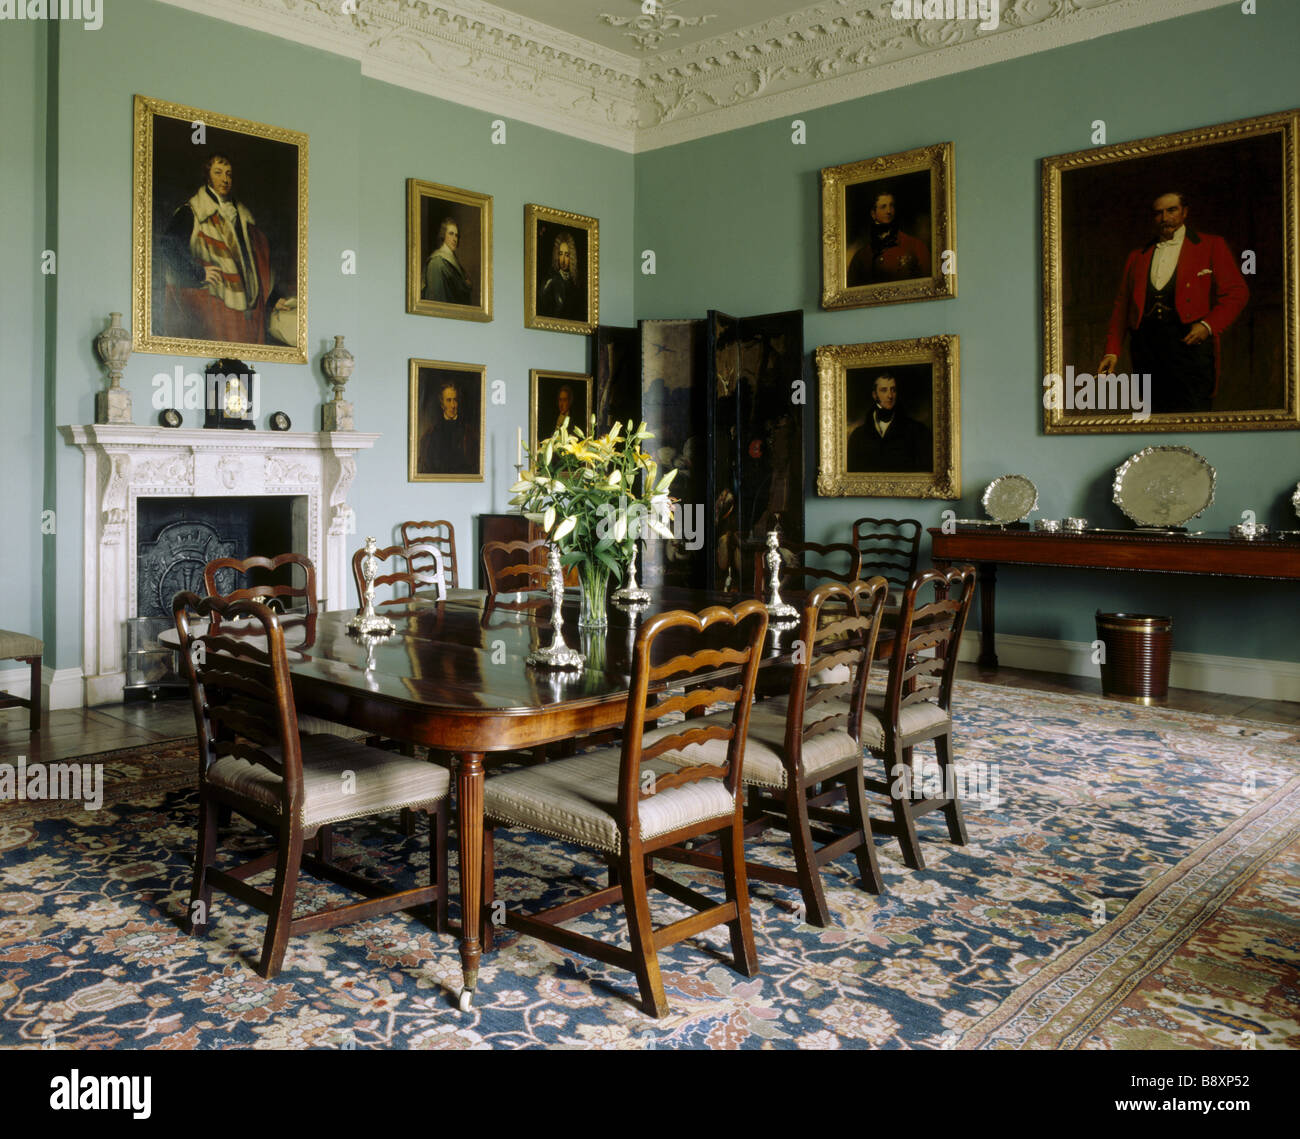 Florence Court Stock Photo Royalty Free Image 22715758